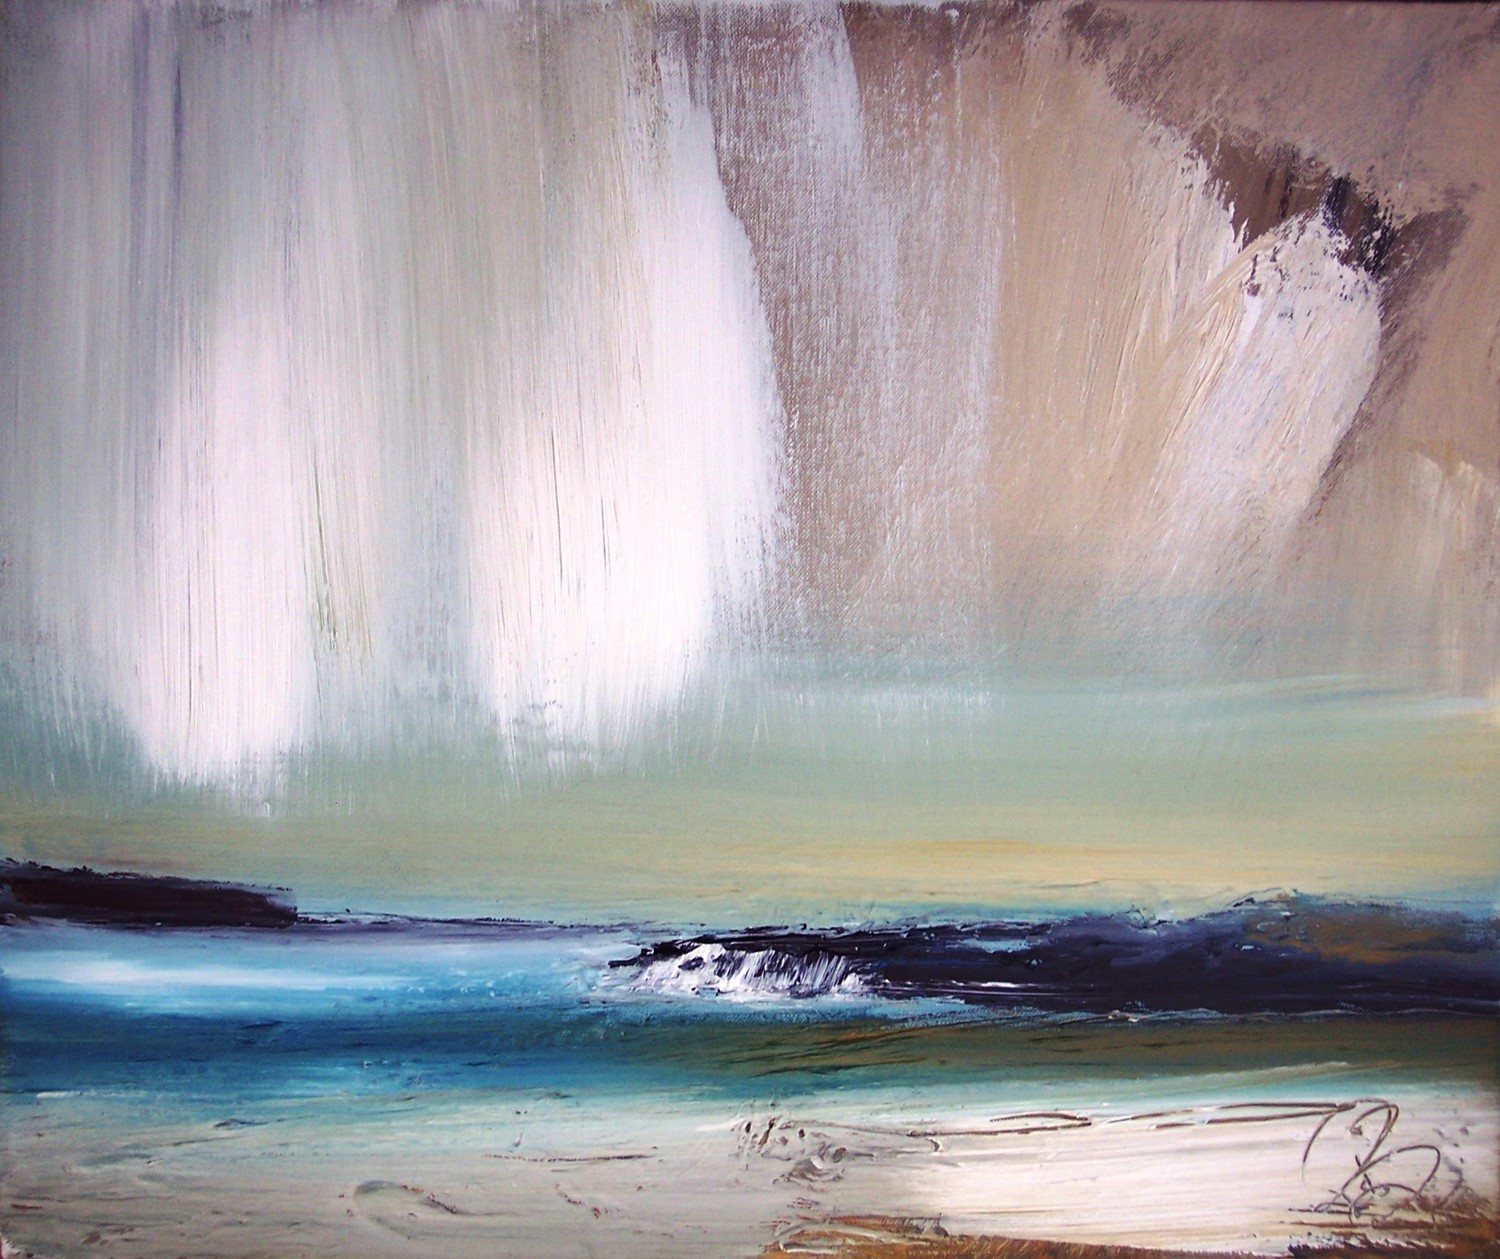 'Cool Bay' by artist Rosanne Barr